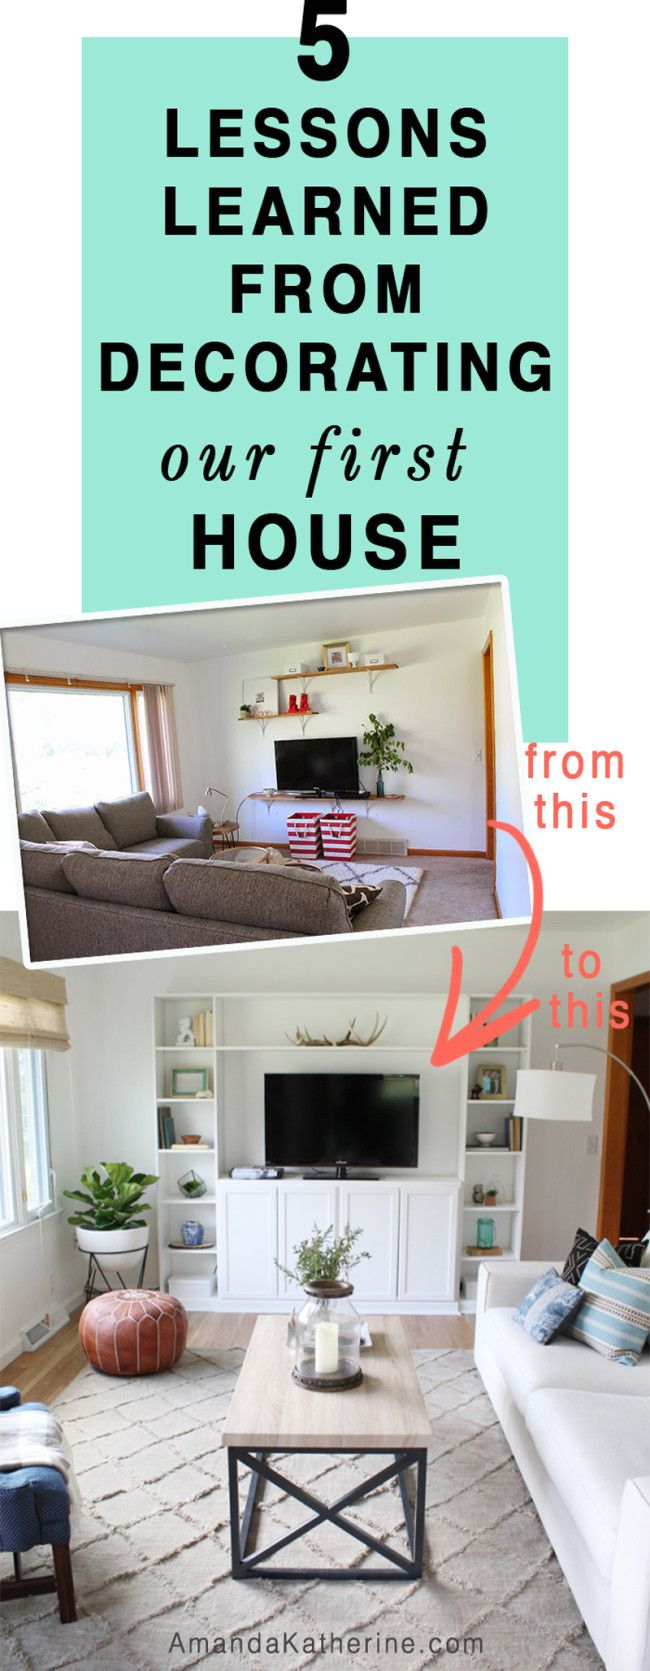 After 2 years of decorating our first house, I'm sharing our biggest mistakes/regrets/things we wish we did differently. I struggled to decorate our home for the first year, but once I found my decorating groove, I had the confidence to know what to buy and what pieces looked good together. Click to read the 5 lessons I learned and how I transformed our home.